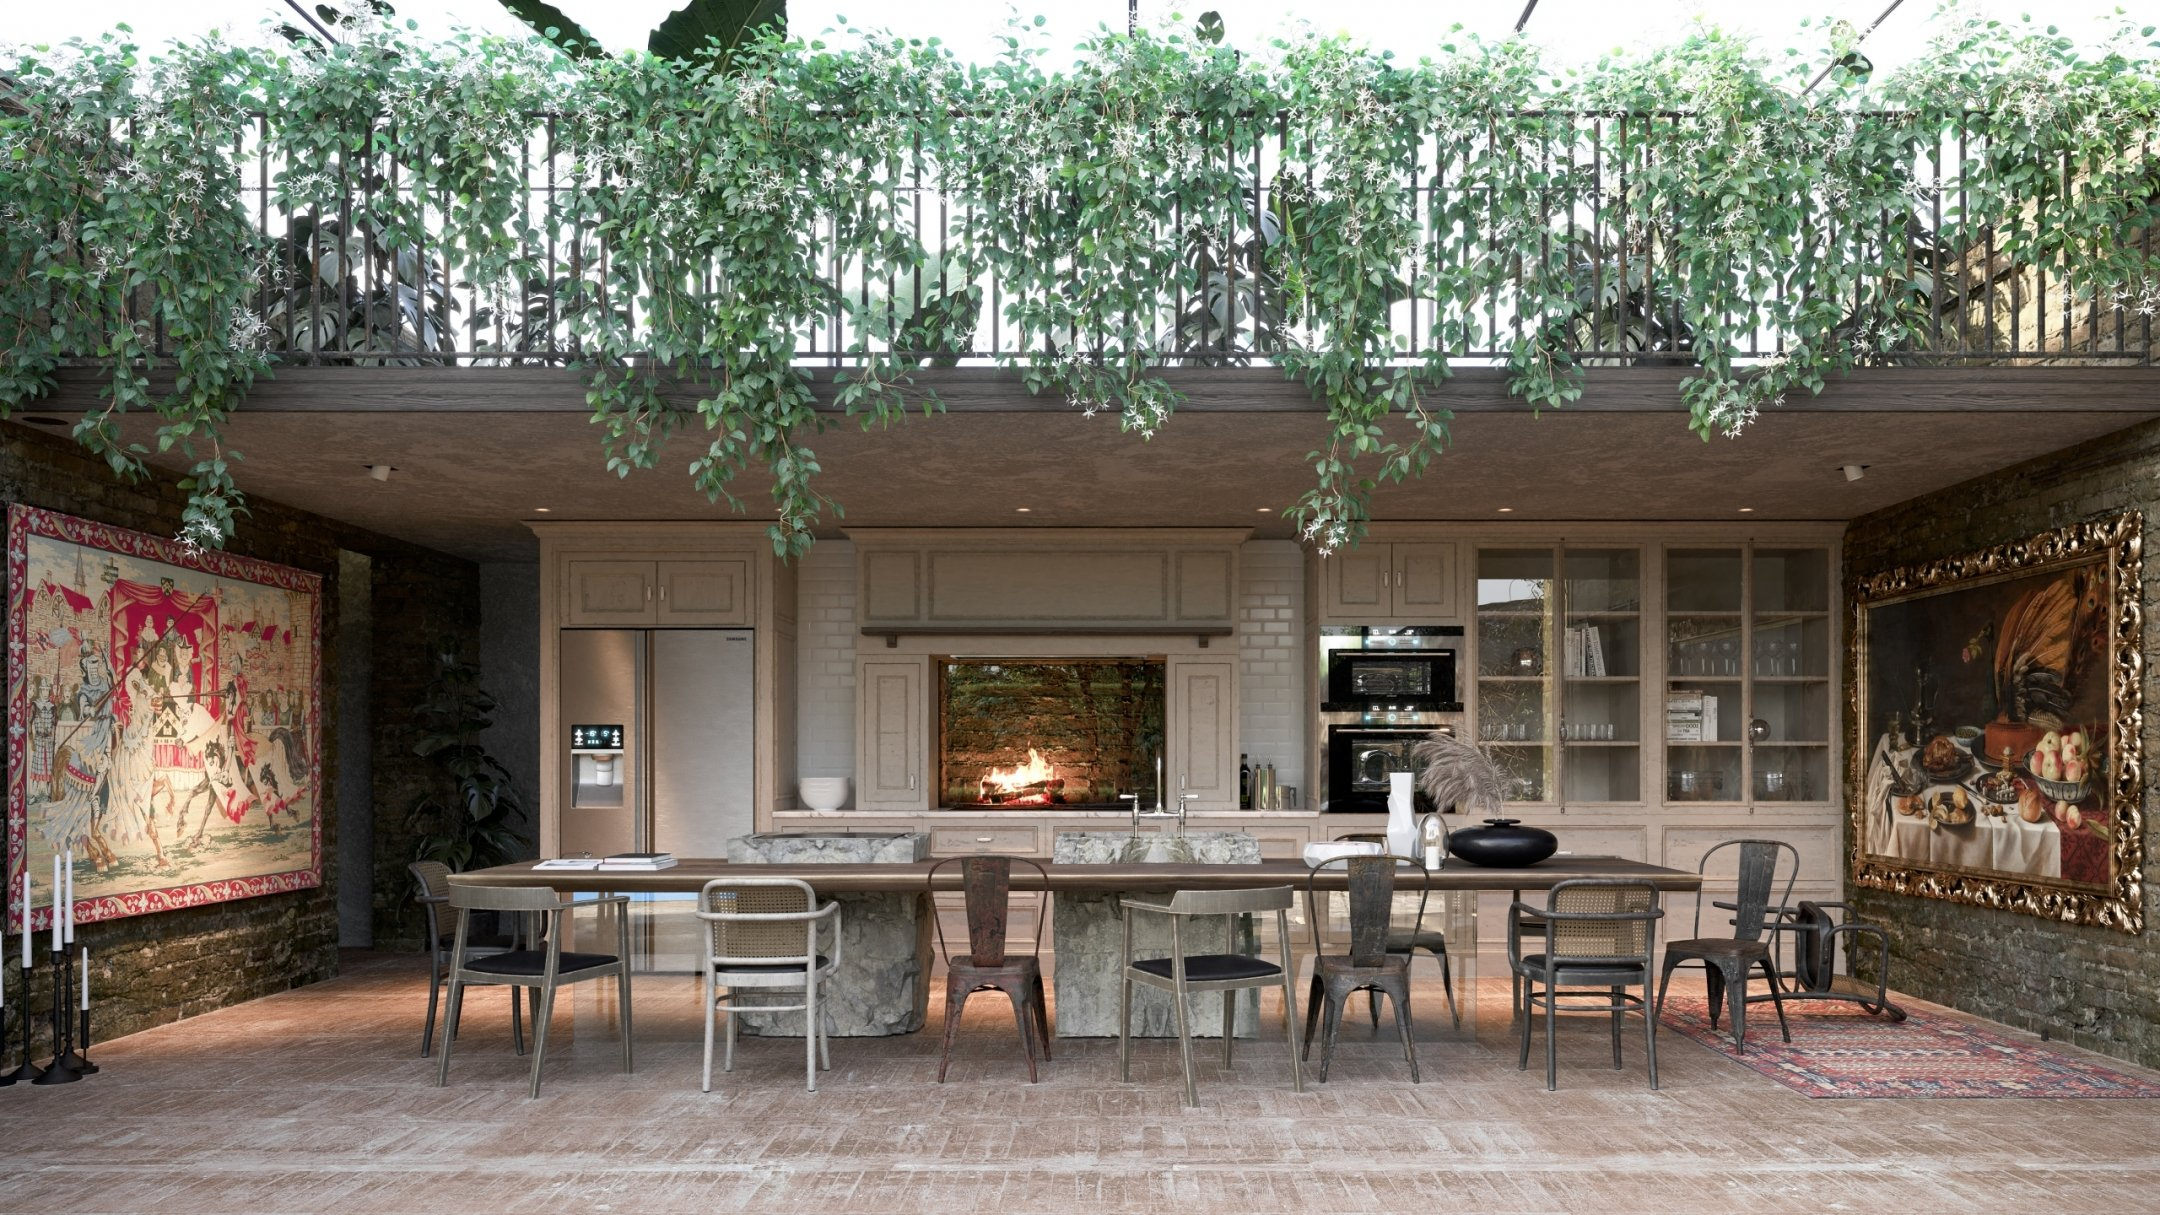 Photorealistic CG Visualization of an Outdoor Kitchen